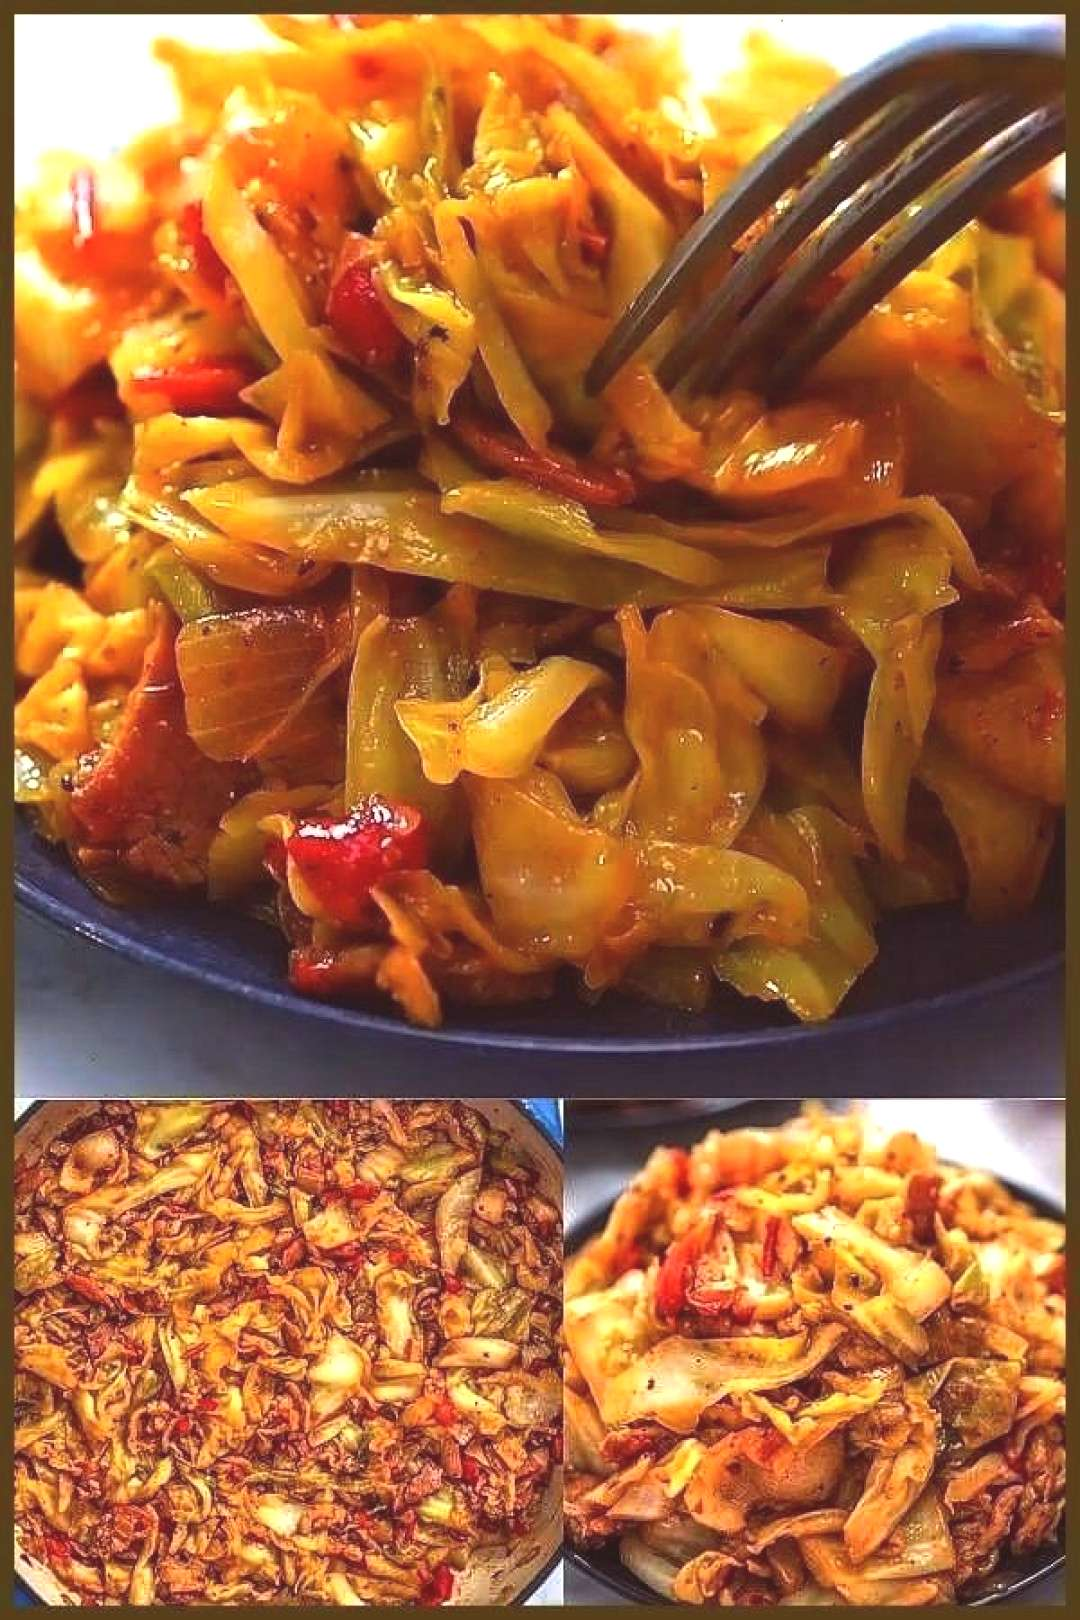 recipe is amazingly good! With bacon, onions, peppers, ... This fried cabbage recipe is amazingly g